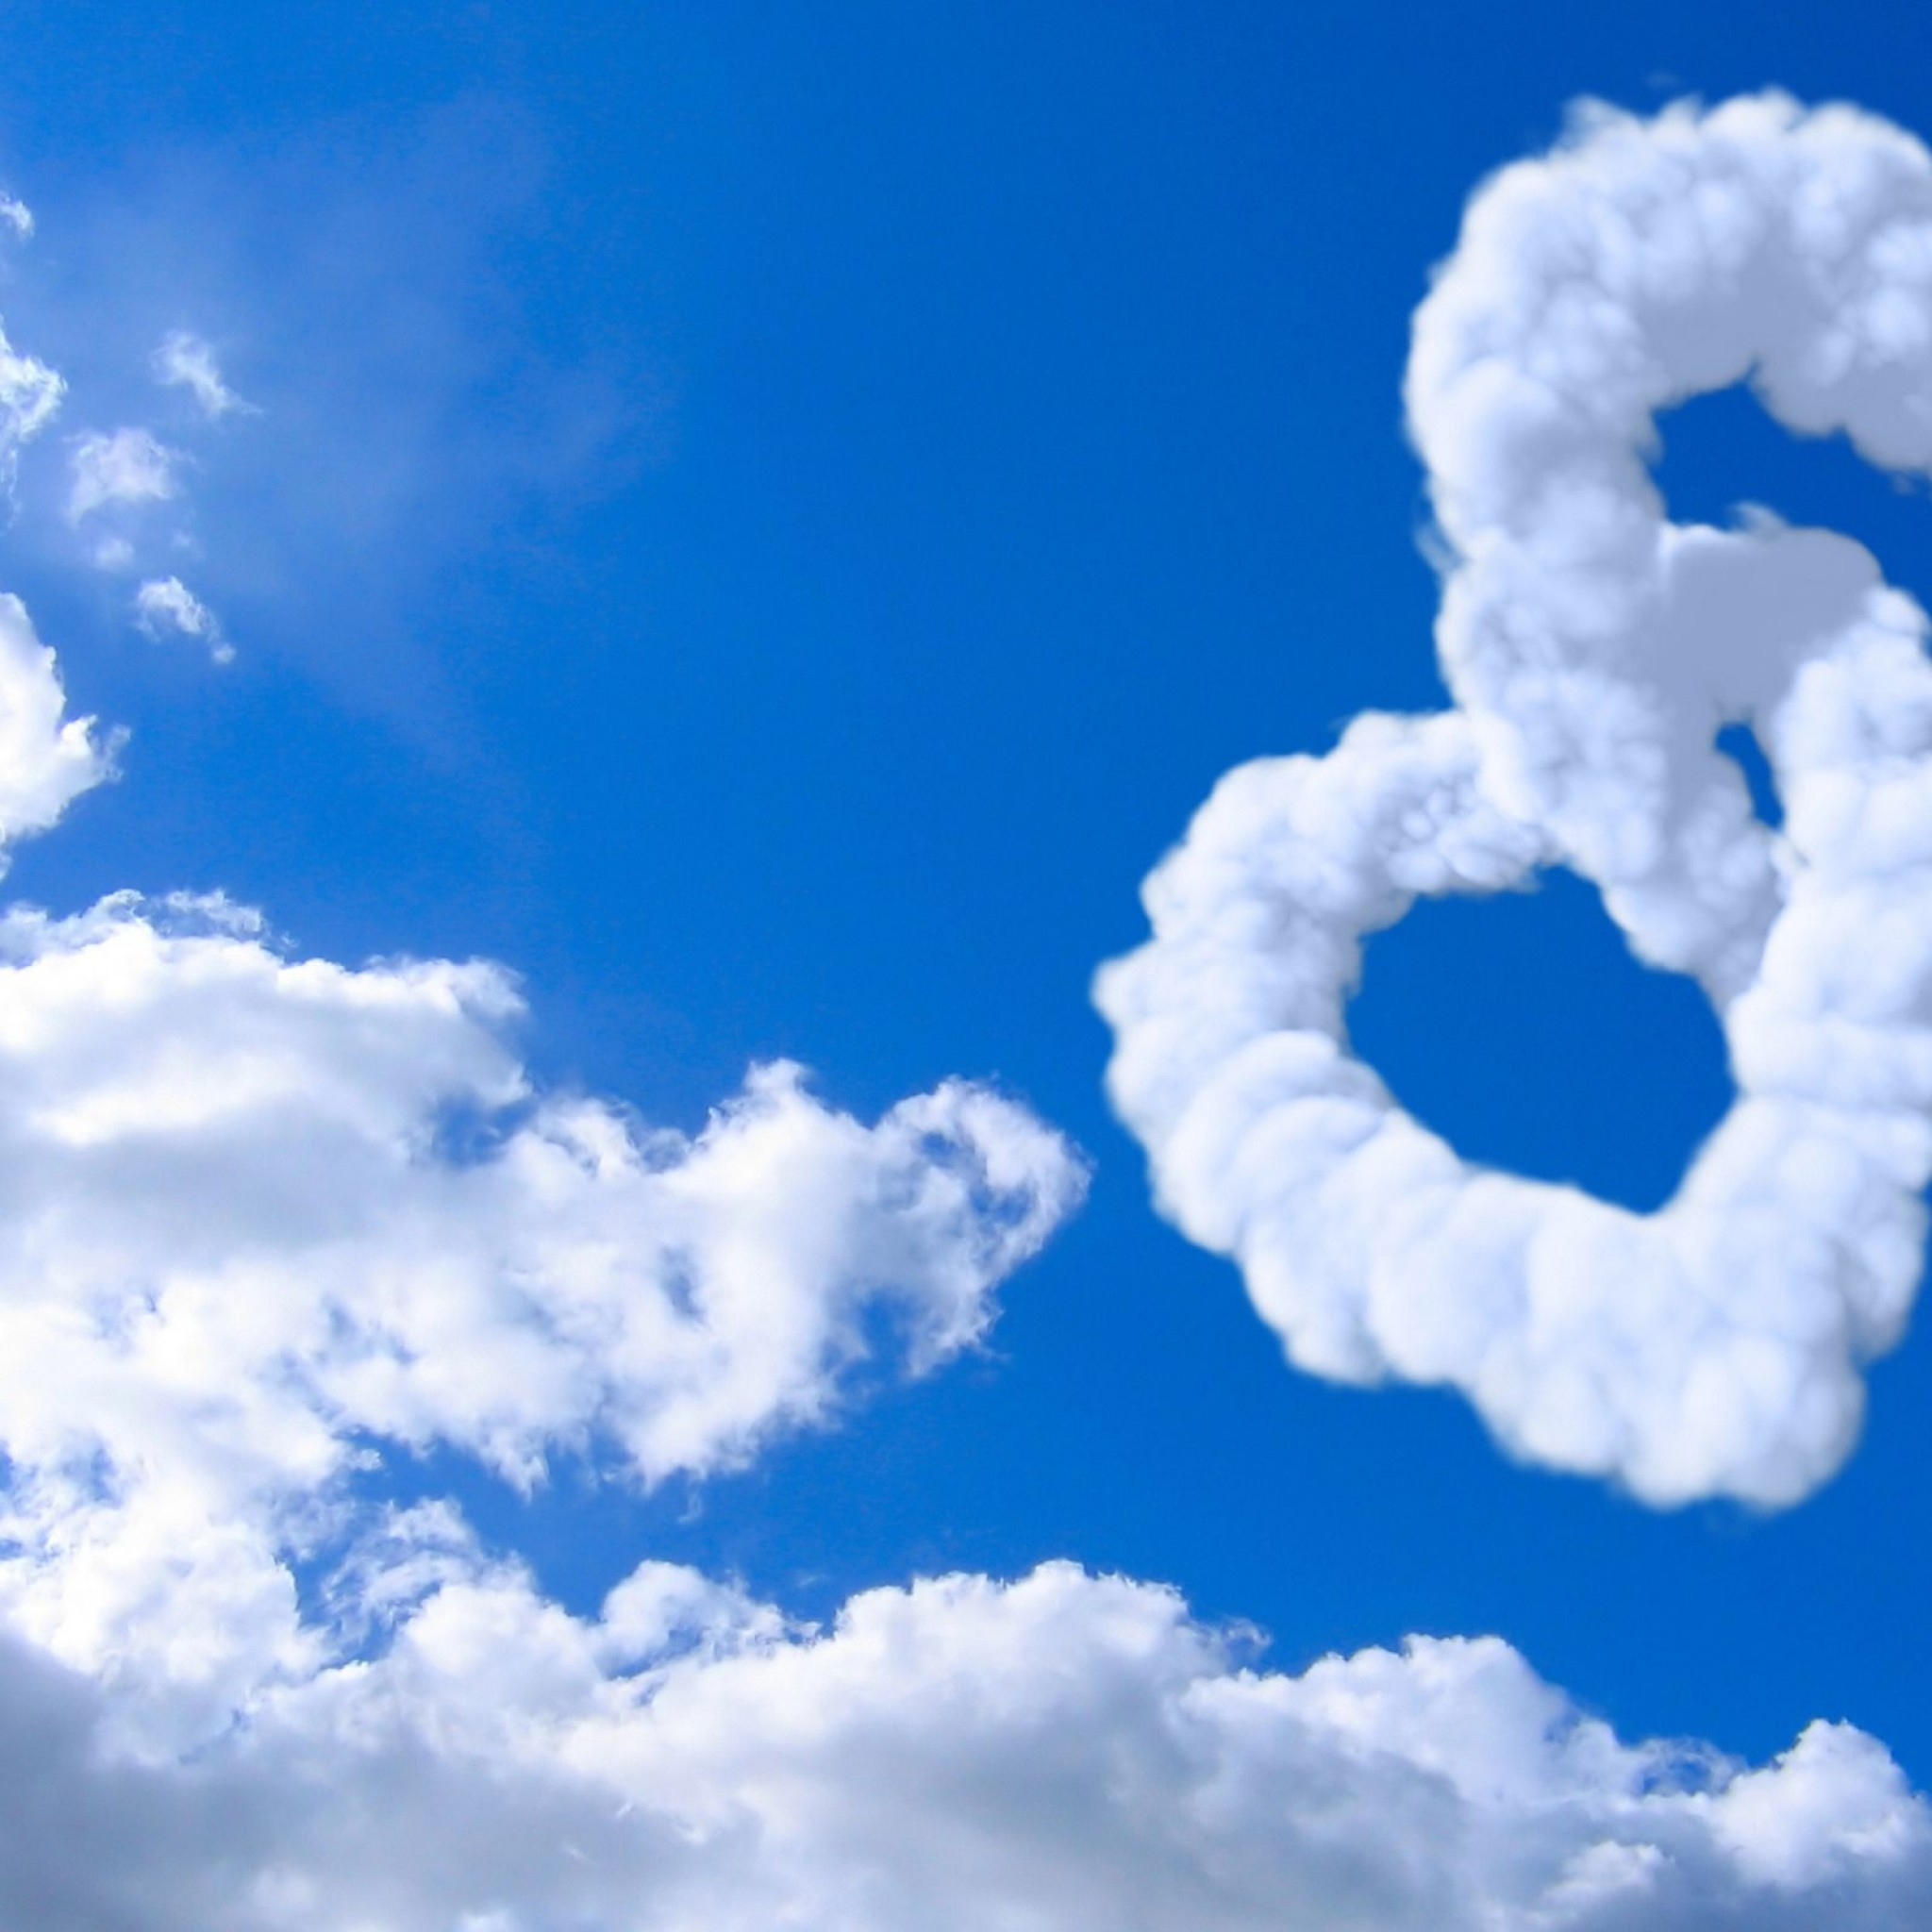 Love Heart Clouds In Blue Sky Heart February S #13790 Wallpaper